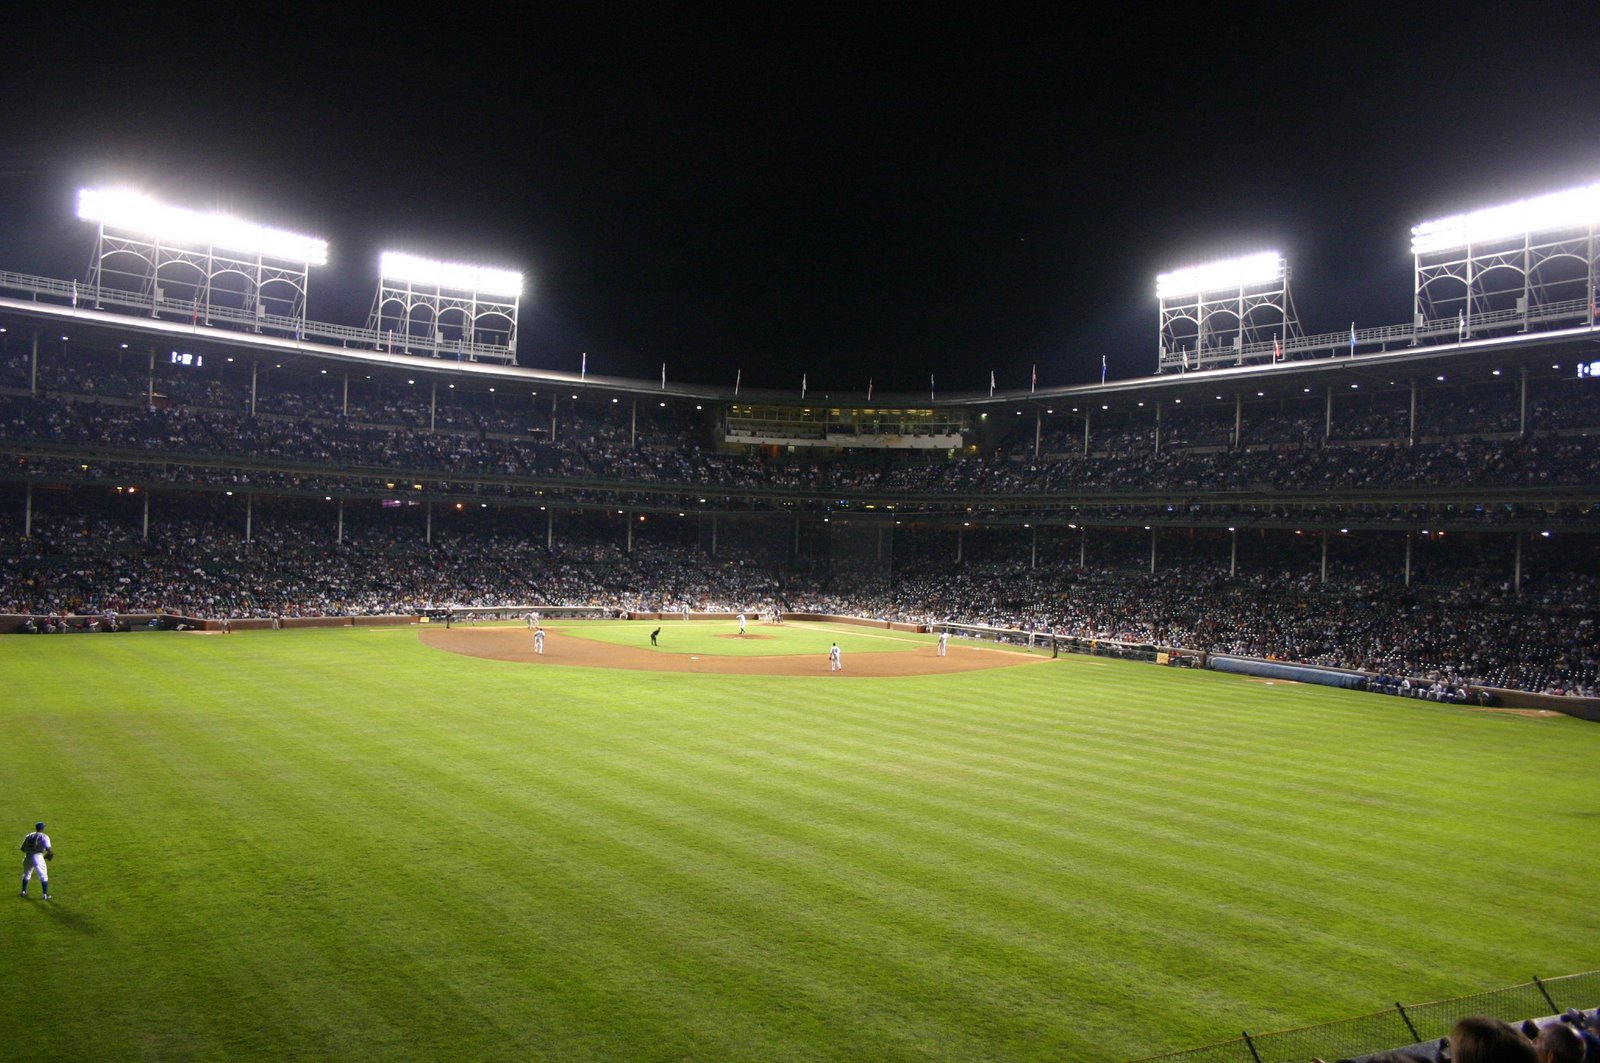 A Night Game At The Friendly Confines.